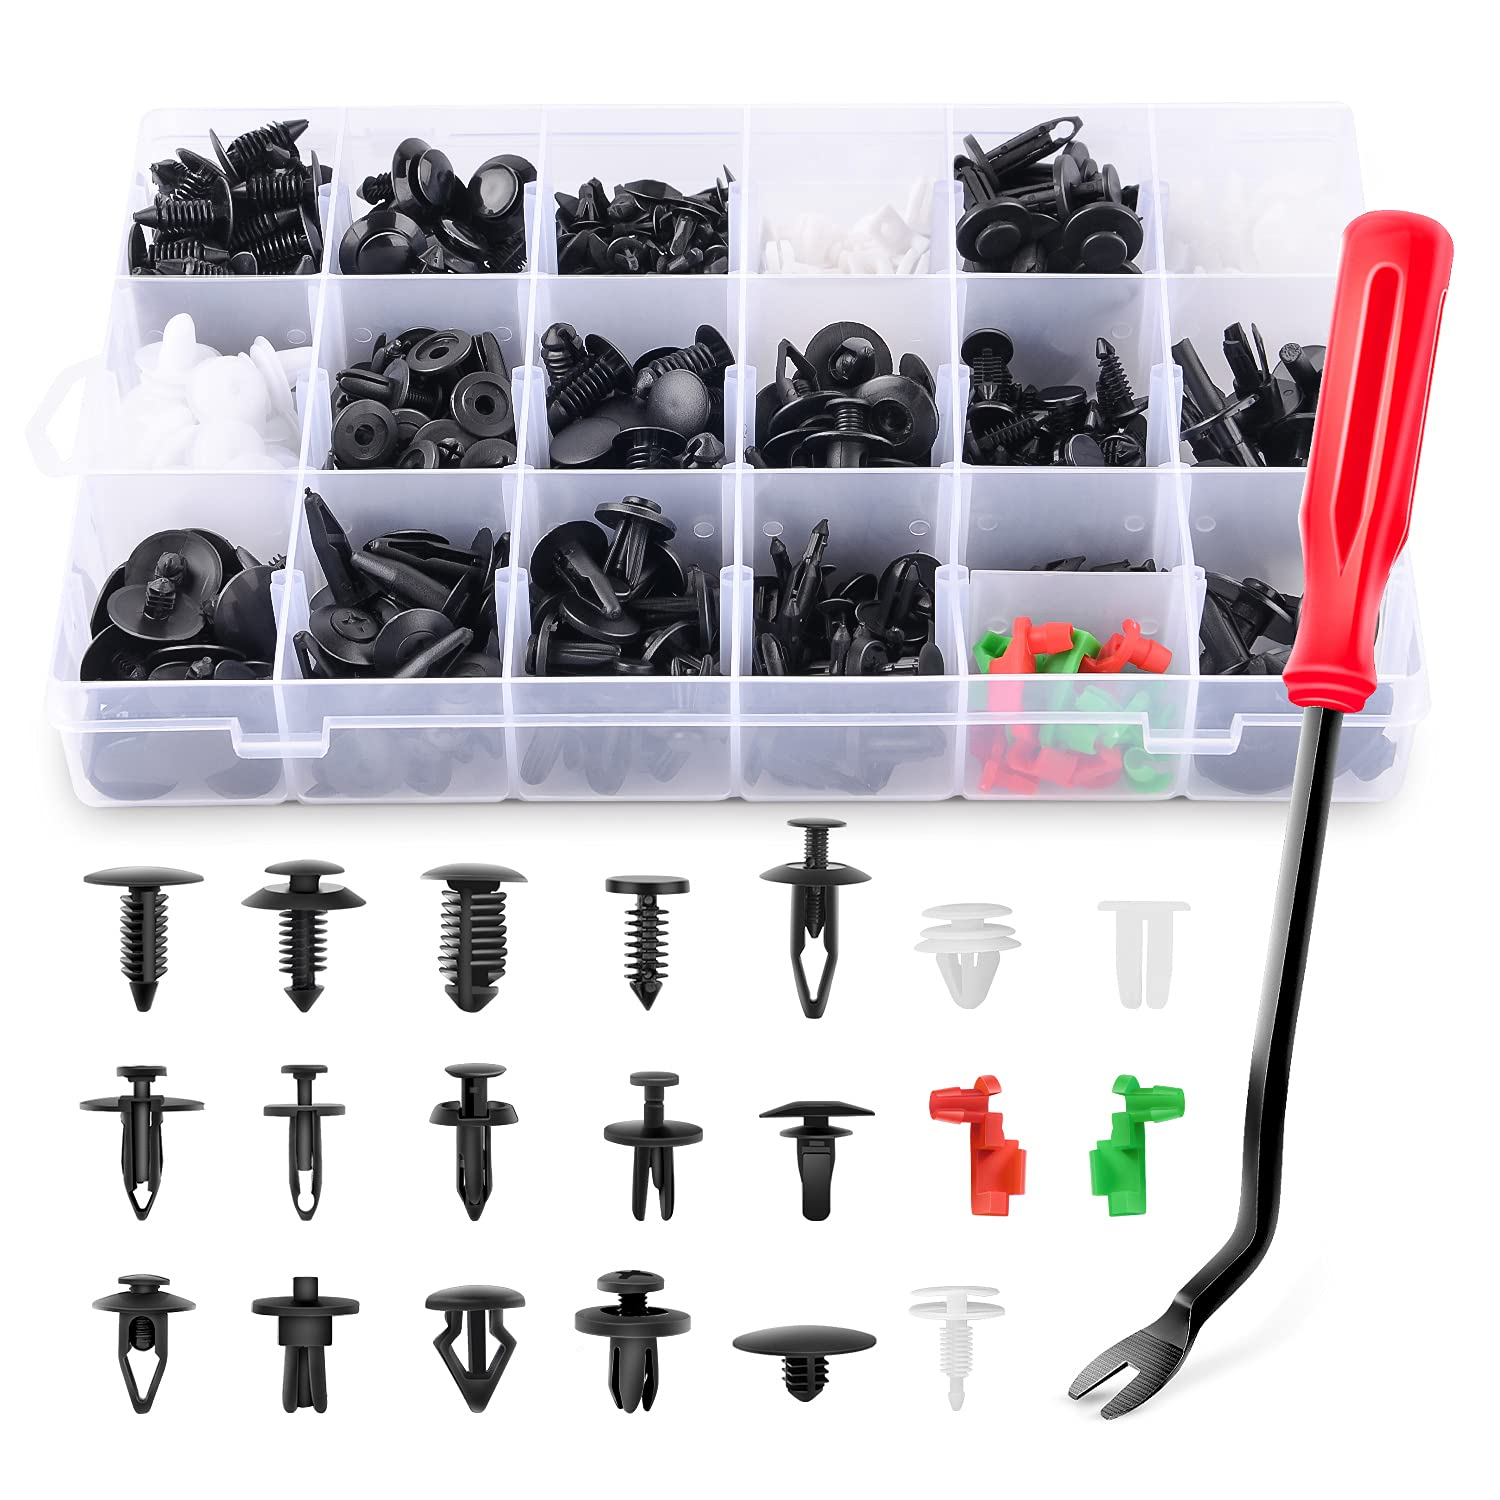 GOOACC 425 Pcs Car Body Retainer Clips Set Tailgate Handle Rod Clip & Fastener Remover - 19 Most Popular Sizes Auto Push Pin Rivets Set -Door Trim Panel Clips for GM Ford Toyota Honda Chrysler